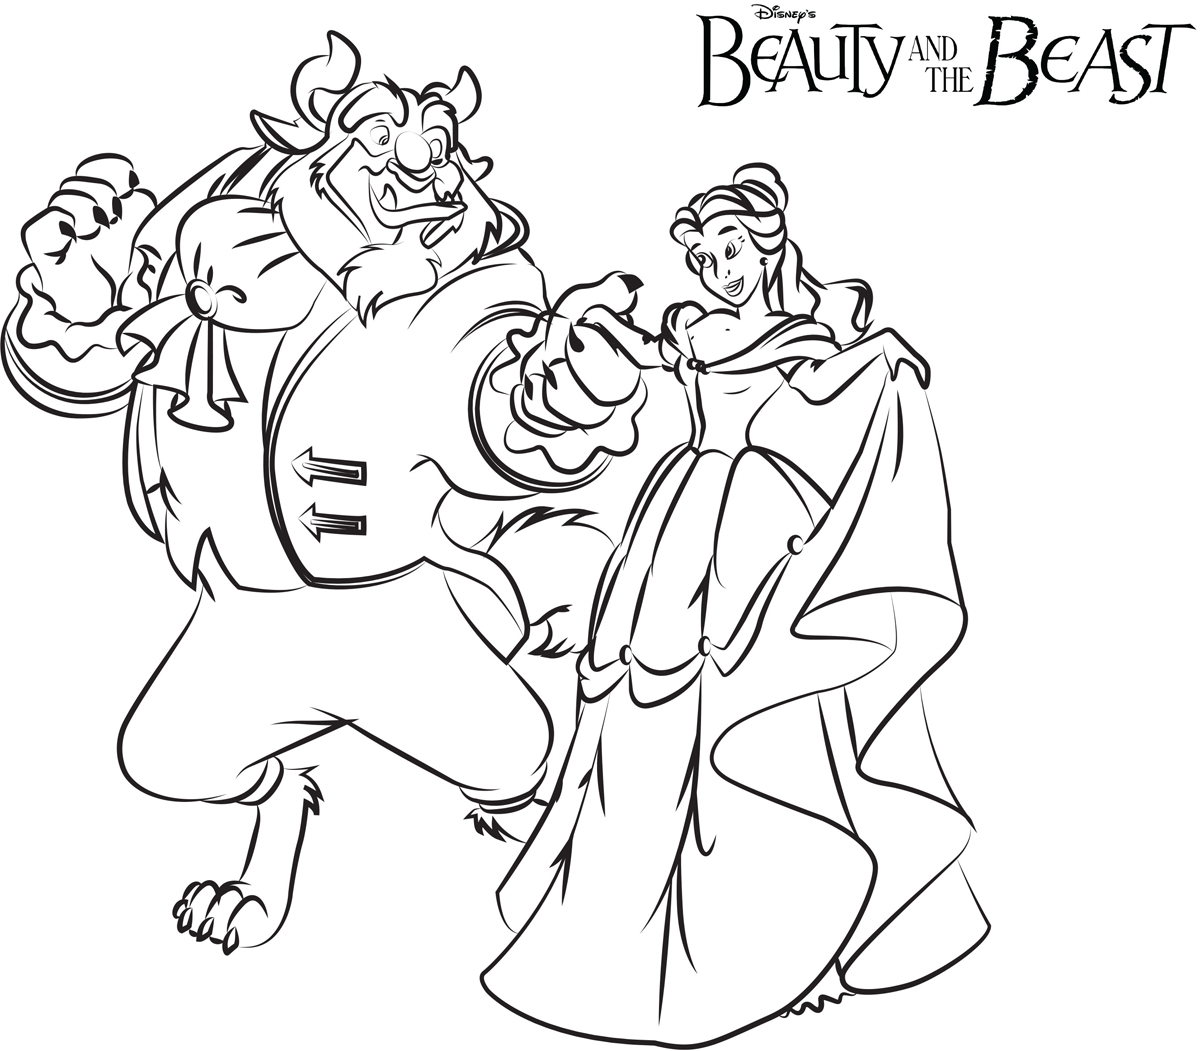 Ballroom Dance Beauty And The Beast Coloring Pages Disney Movies List